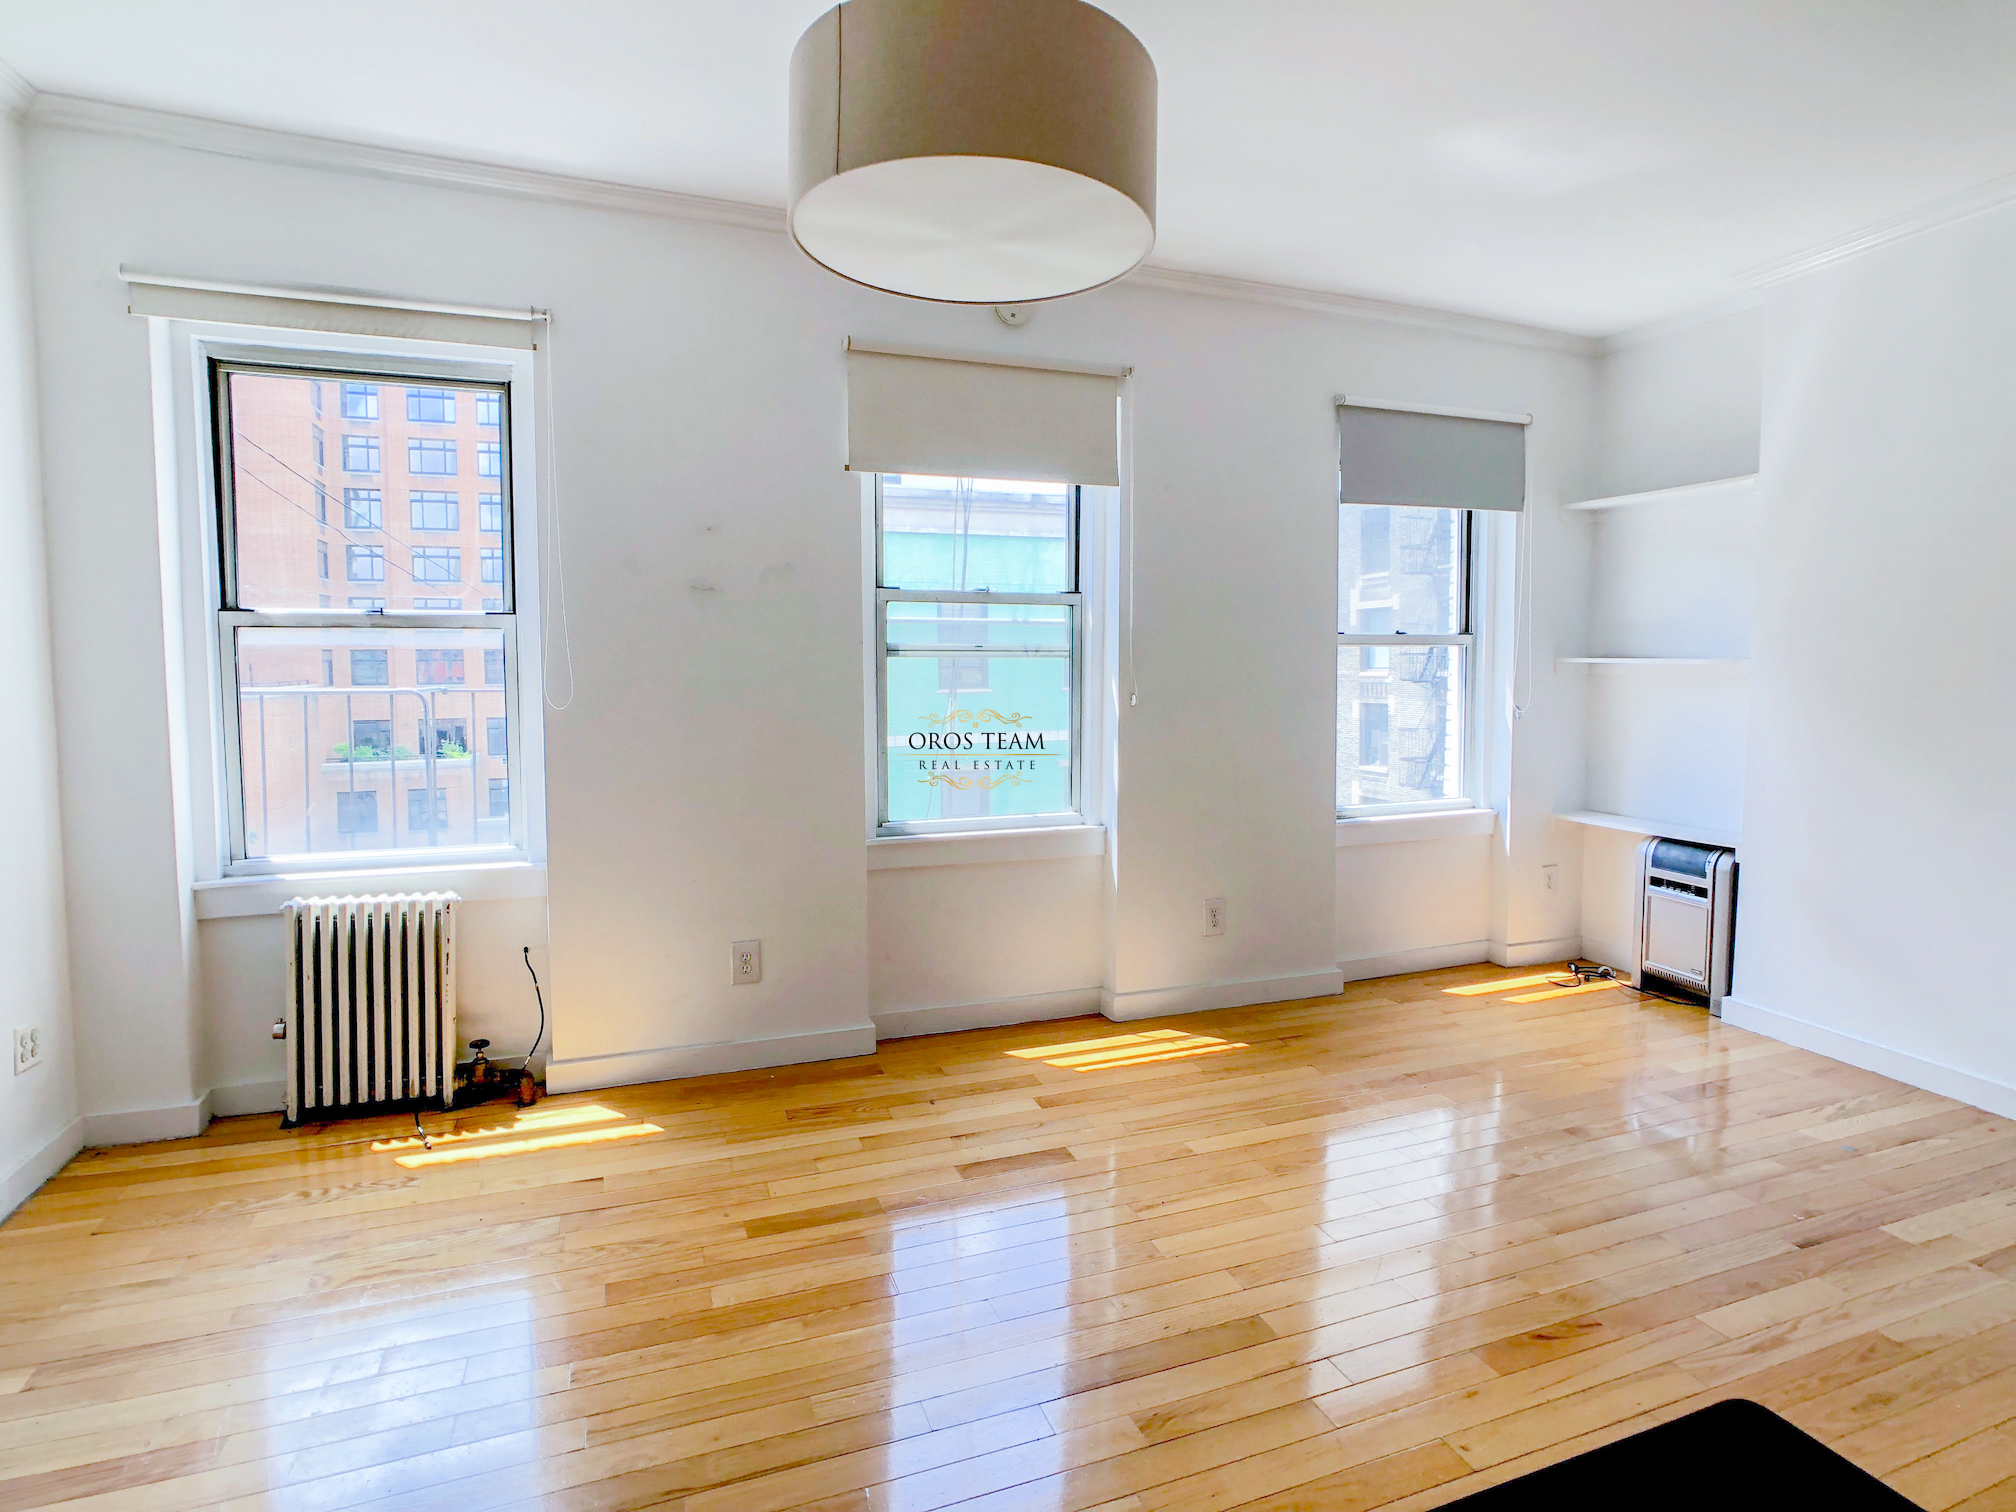 - Gorgeous South Facing Alcove studio in Soho!This beauty features renovated open kitchen that is equipped with dishwasher, large breakfast bar and plenty of storage space. Three large beautiful windows give the unit all the southern light throughout the day. Renovated bathroom has a great skylight!Located in a stellar excellent maintained building with condo feel offering charming interior, security and cleanliness! Quiet yet centrally located near major restaurants, supermarkets, Soho shopping, parks, few minutes away from the Washing Sq Park, walking distance to prime areas downtown. Block away from A, C, E, 1, N, R, Q, subway lines and public transportation.Rent: $2,650 /monthTerms: 12 - 12 MonthsAvailable: Immediate